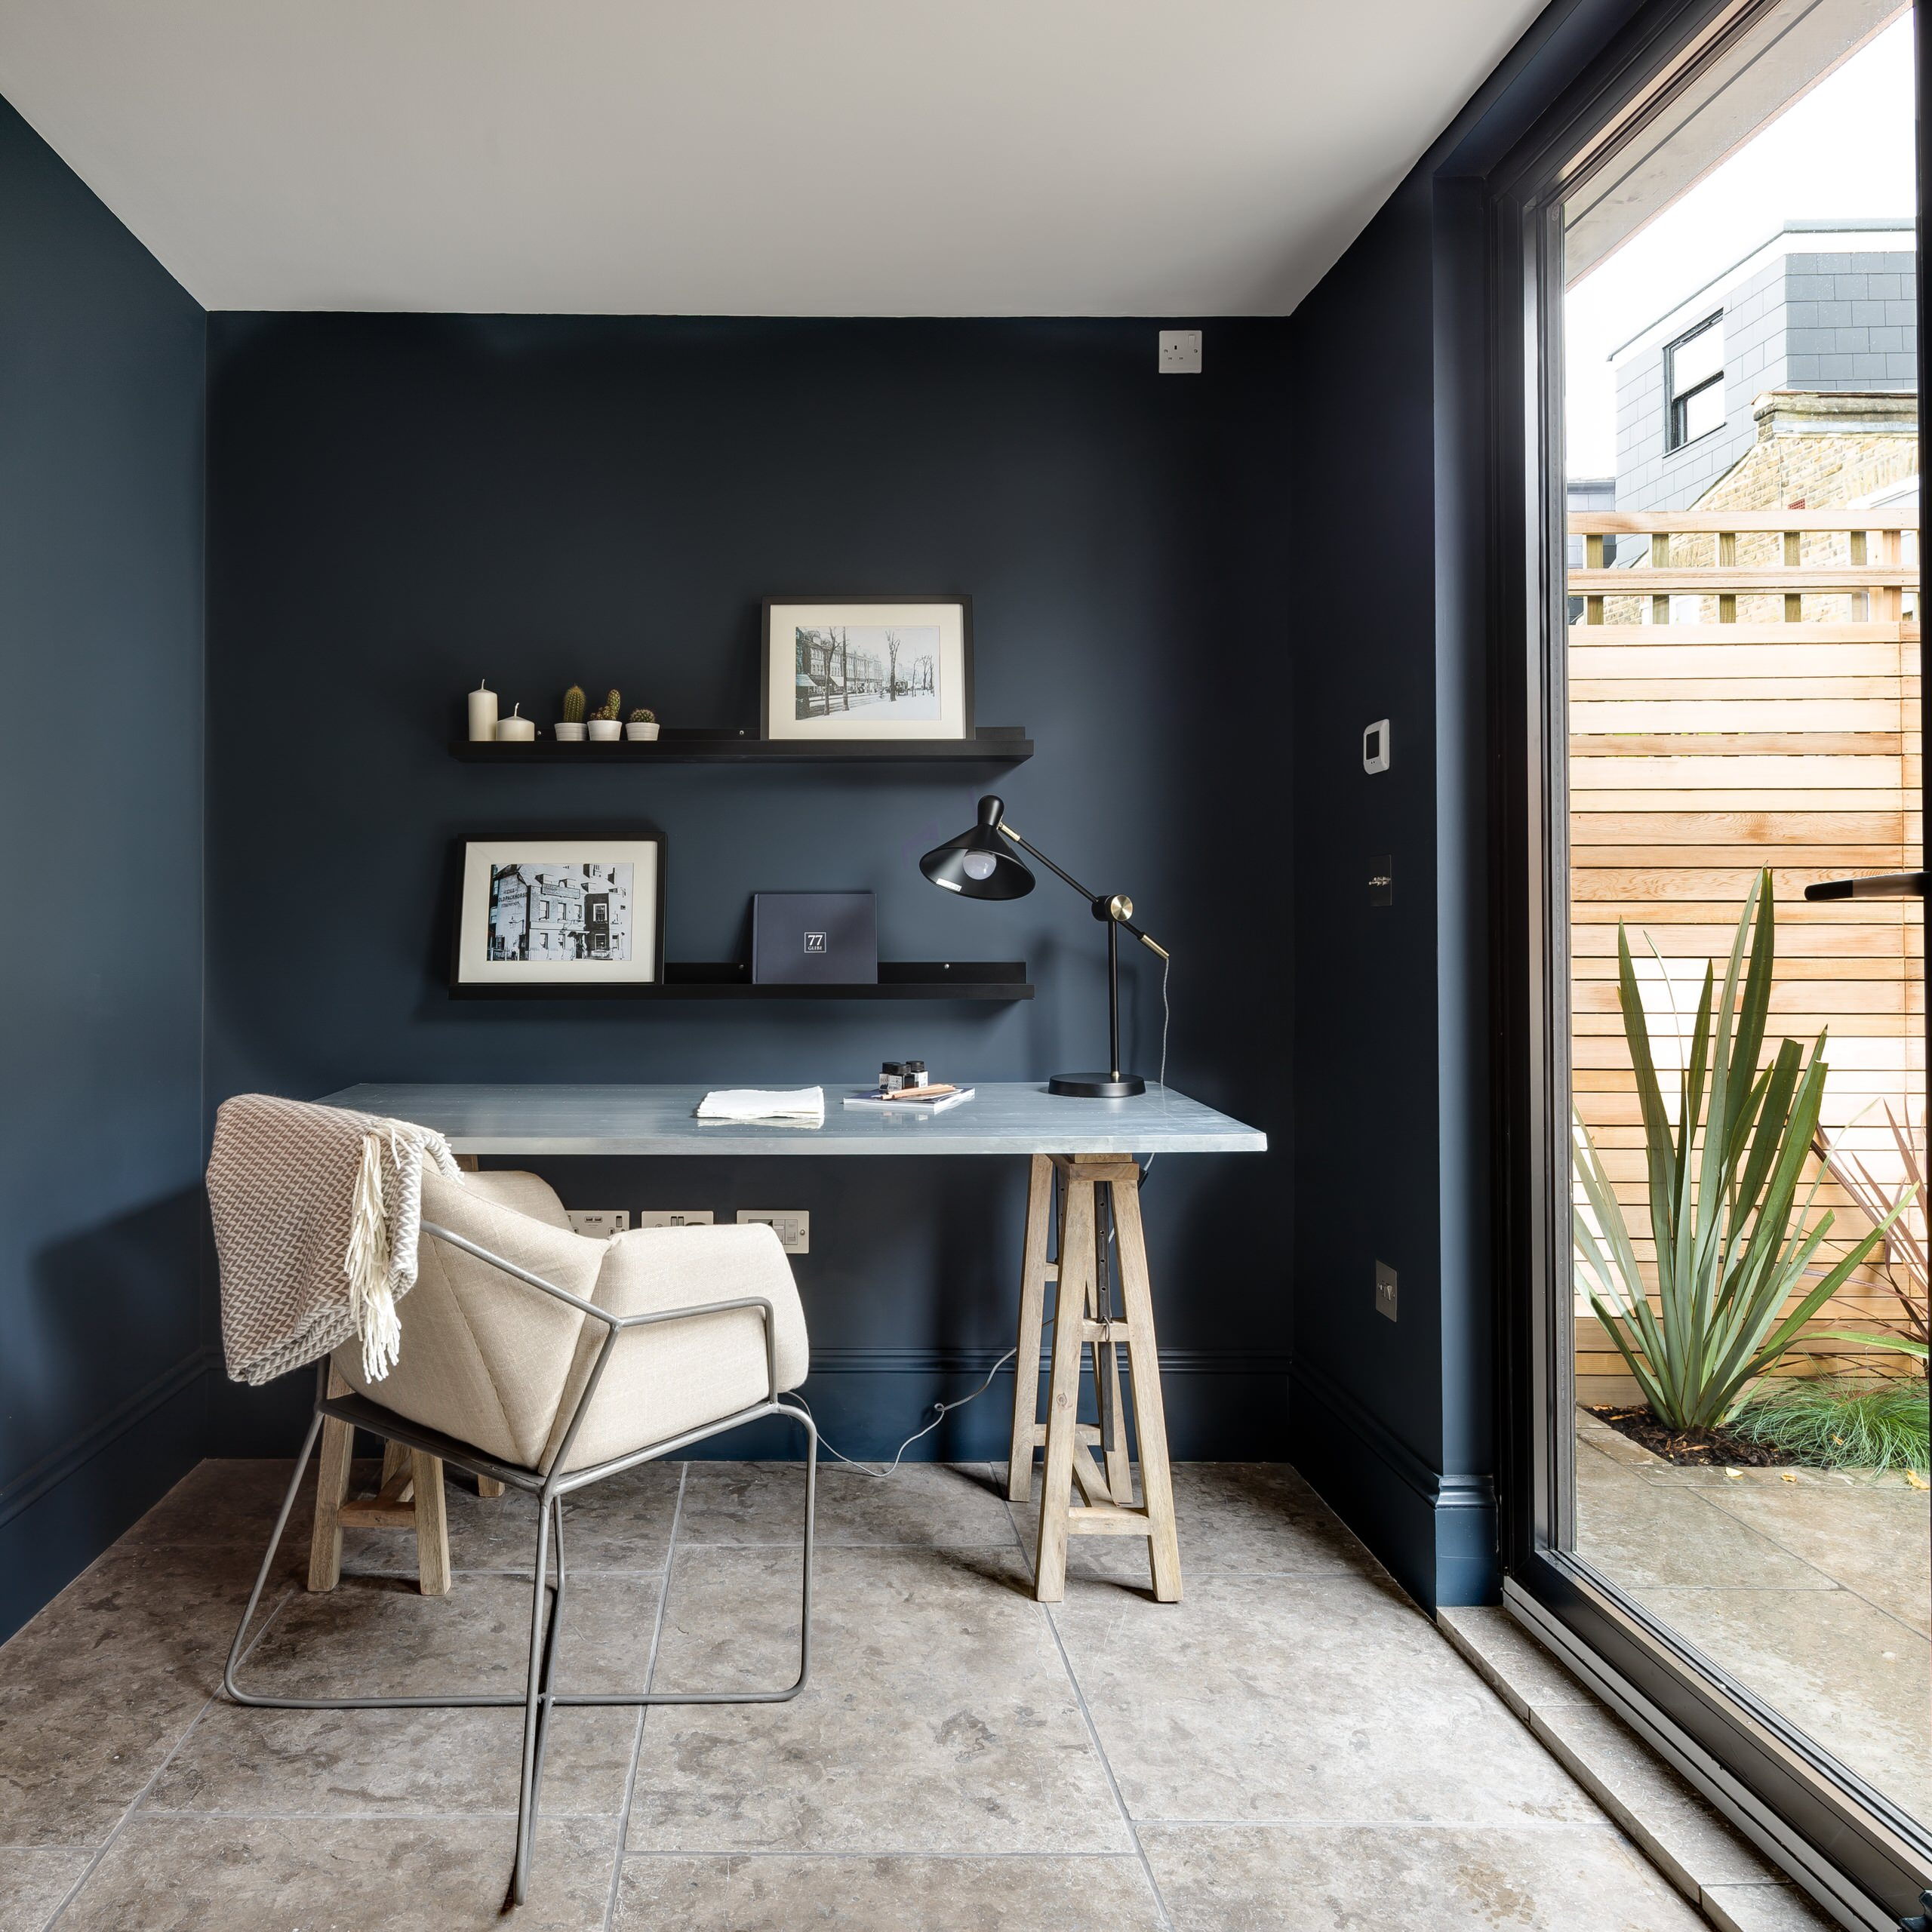 75 Beautiful Scandinavian Home Office Pictures Ideas May 2021 Houzz